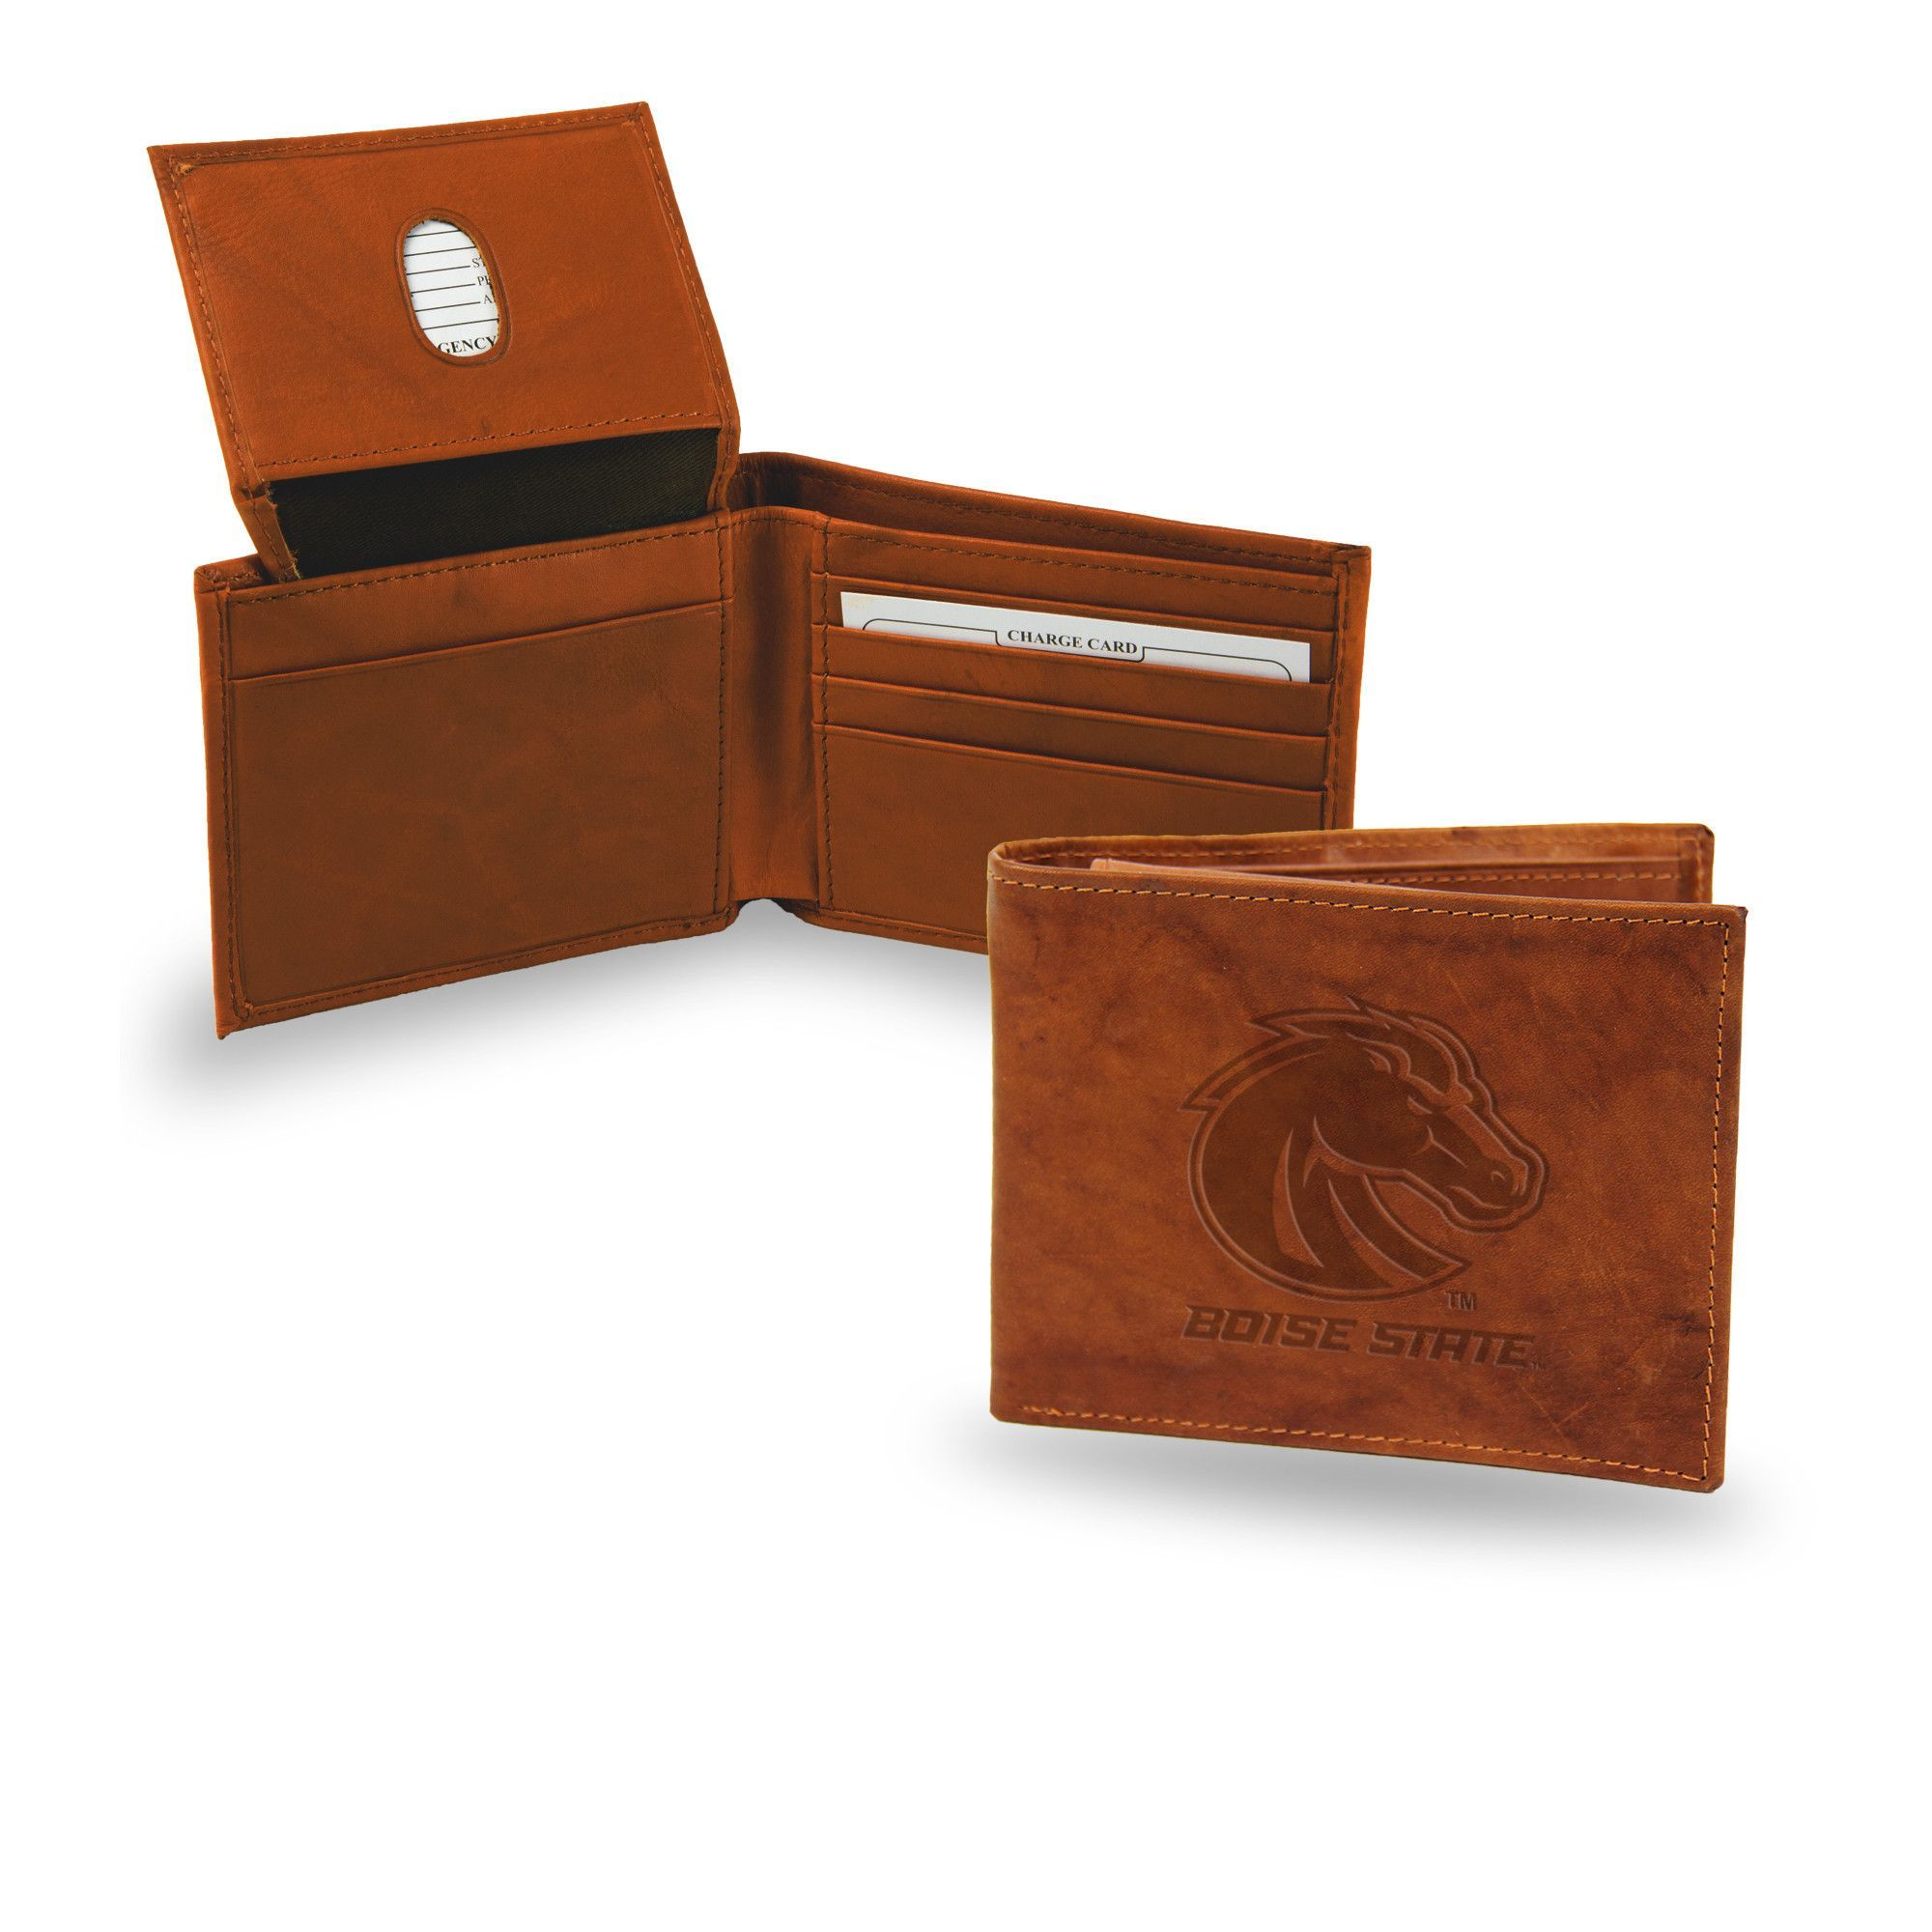 Boise State Broncos Leather Embossed Billfold  544d9e85b4c